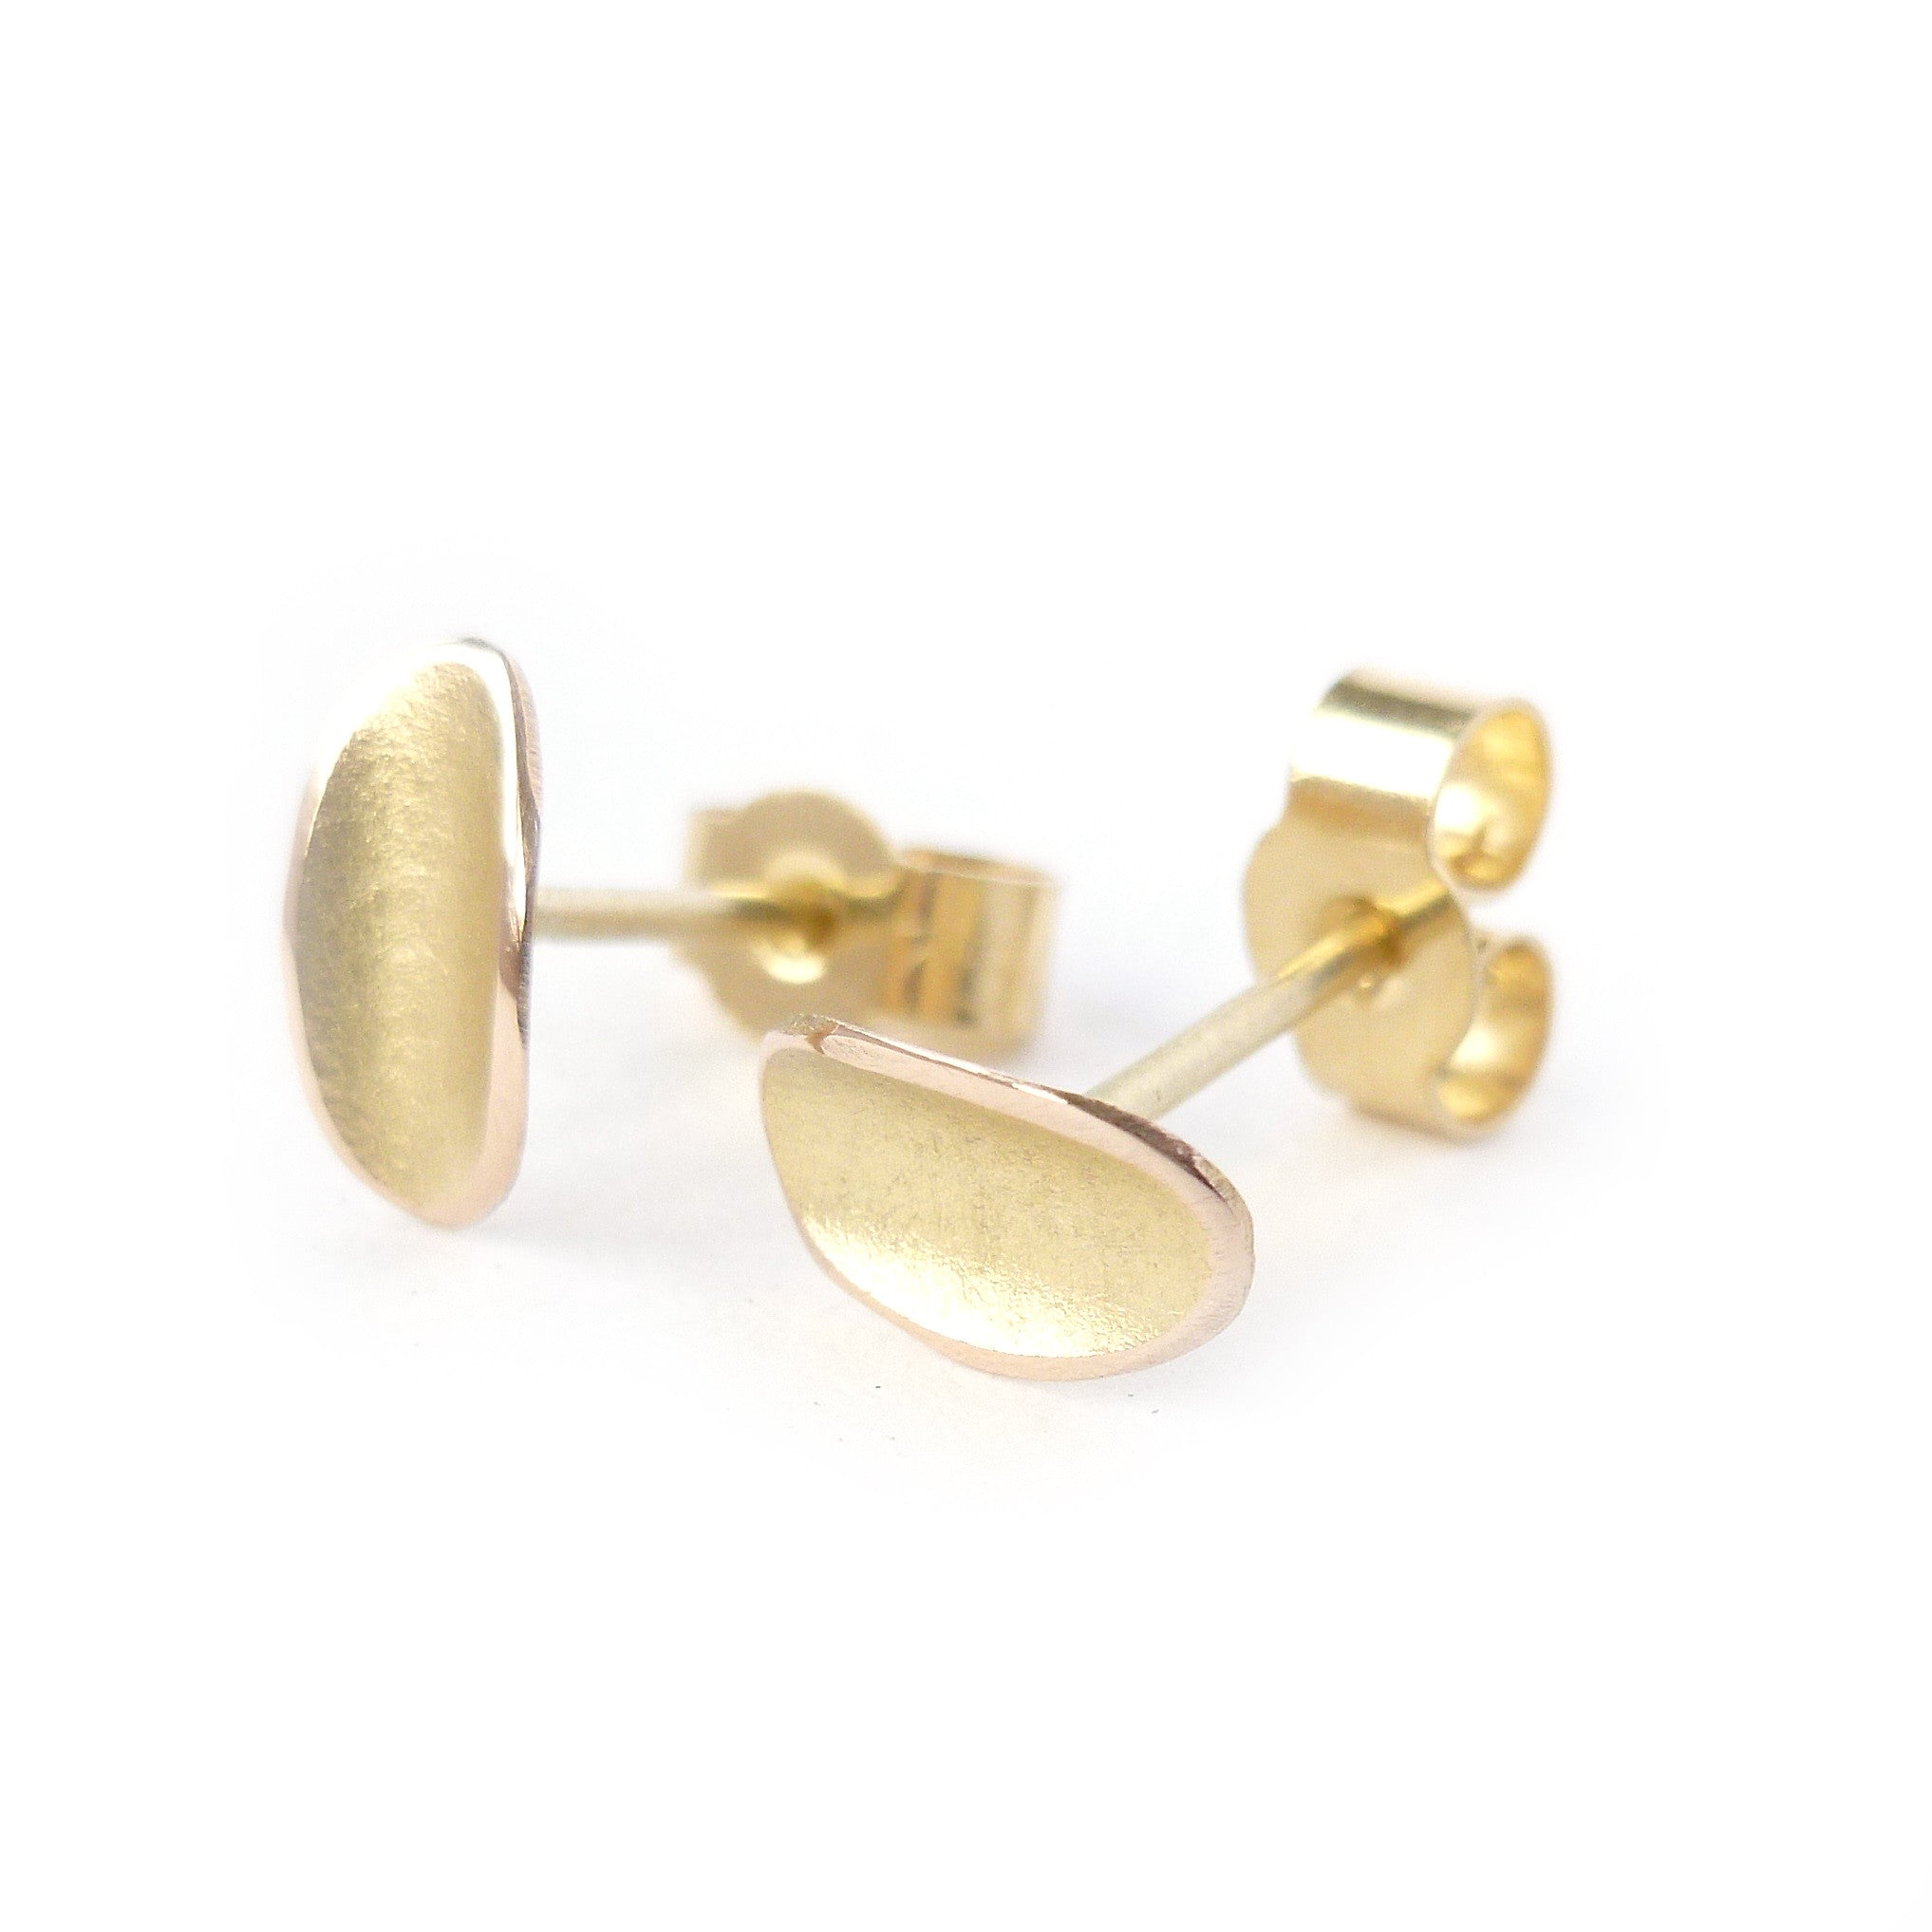 Handmade By · Simple, Small, Discreet Modern Gold Stud Earrings With A  Unique Touch